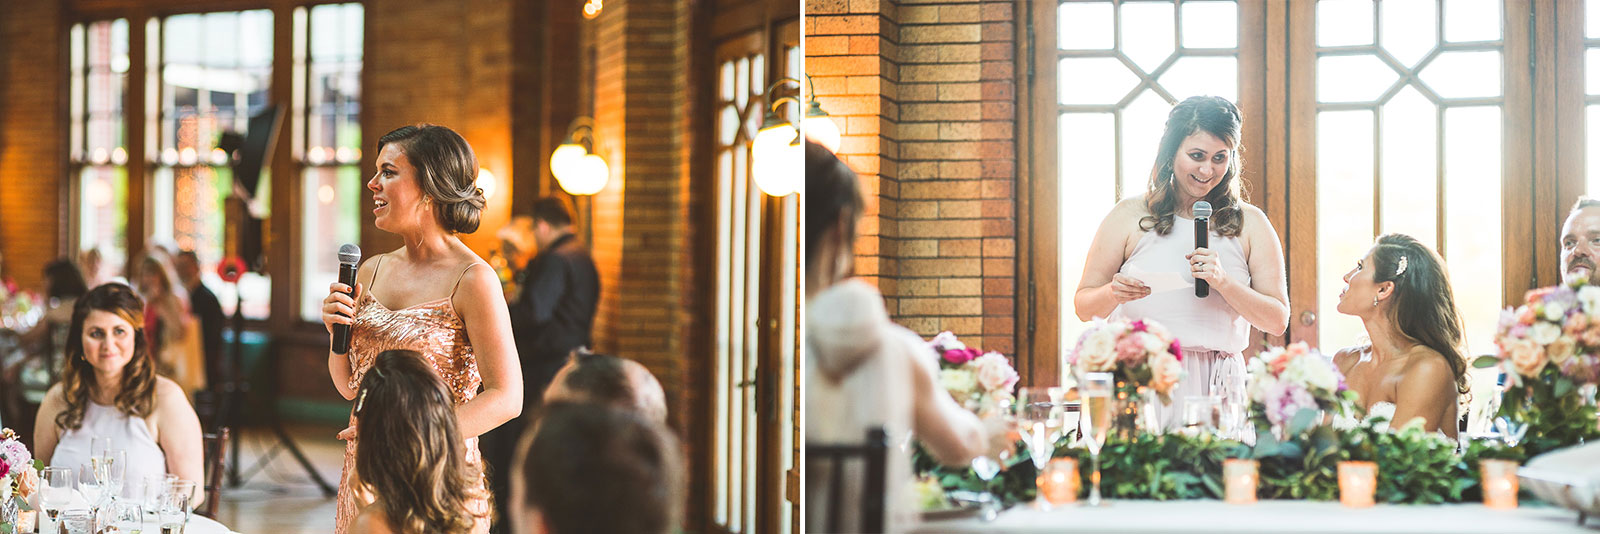 60 maid of honor speech - Natalie + Alan // Chicago Wedding Photographer at Cafe Brauer